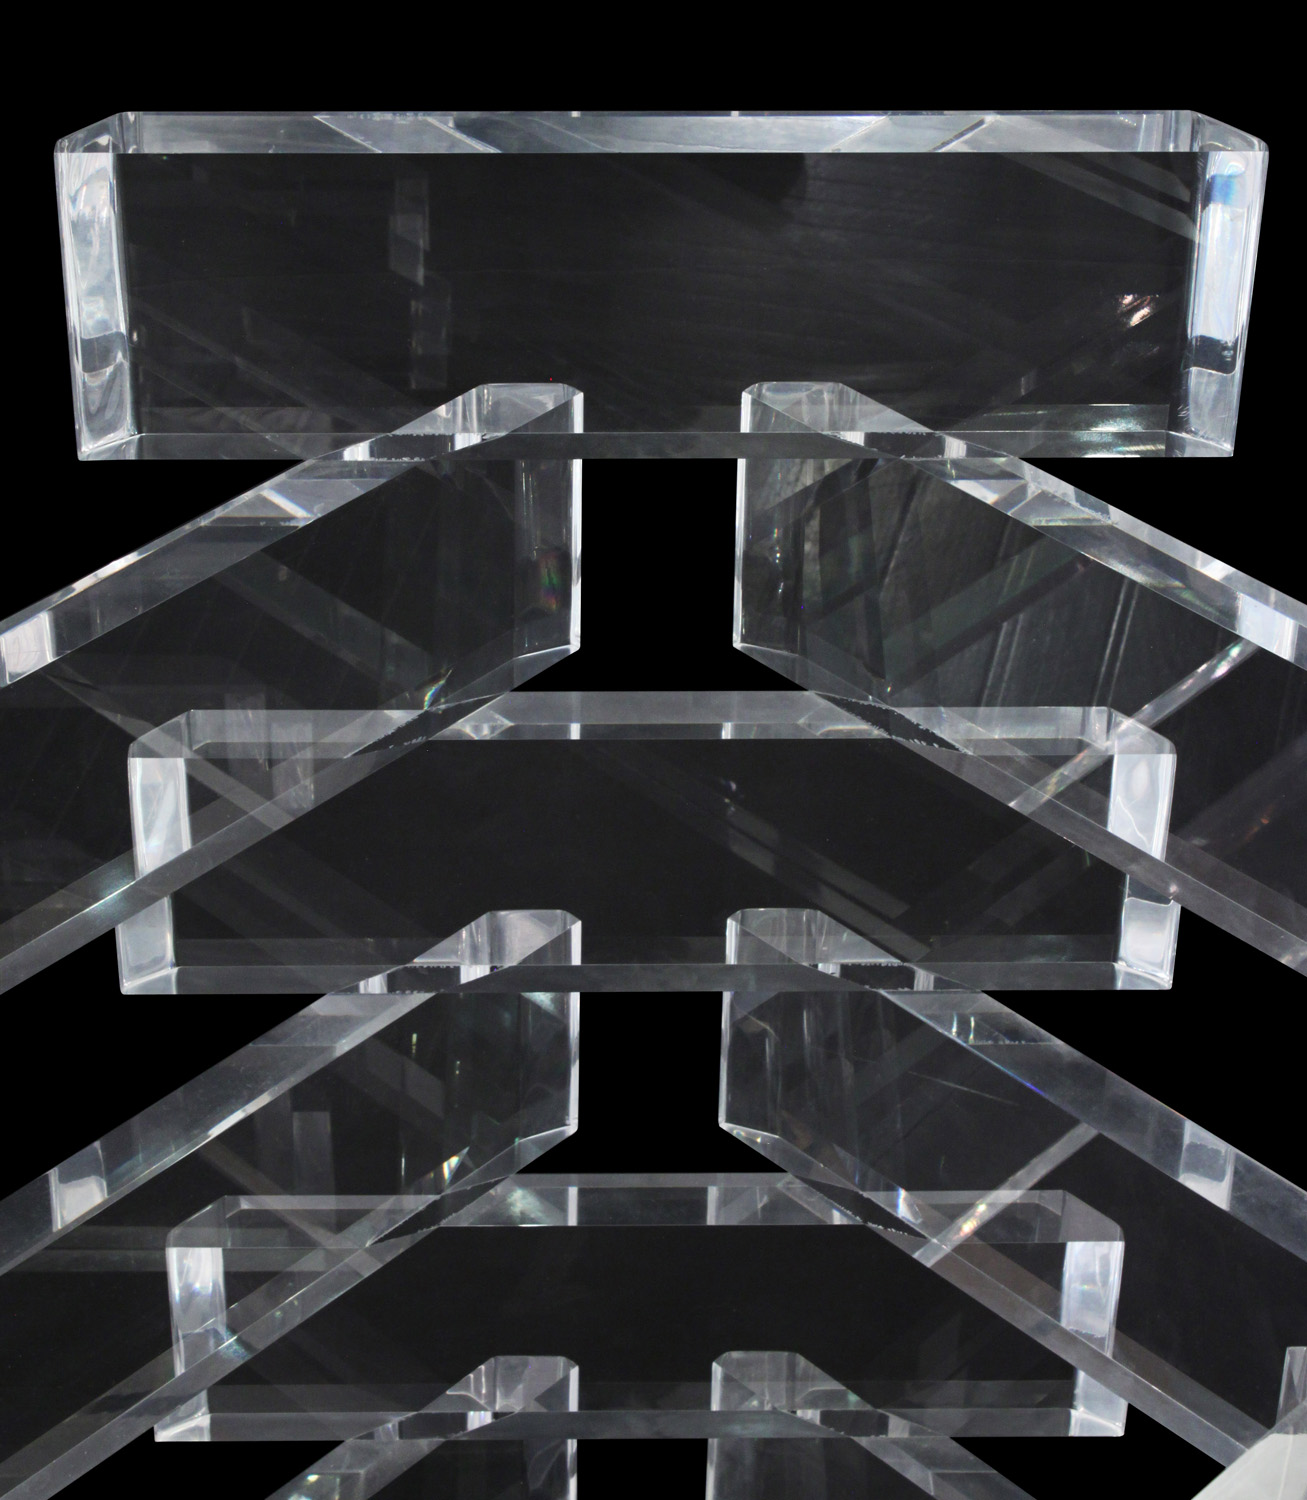 70's 95 stacked lucite blks+glass diningtable146 detail4 hires.jpg